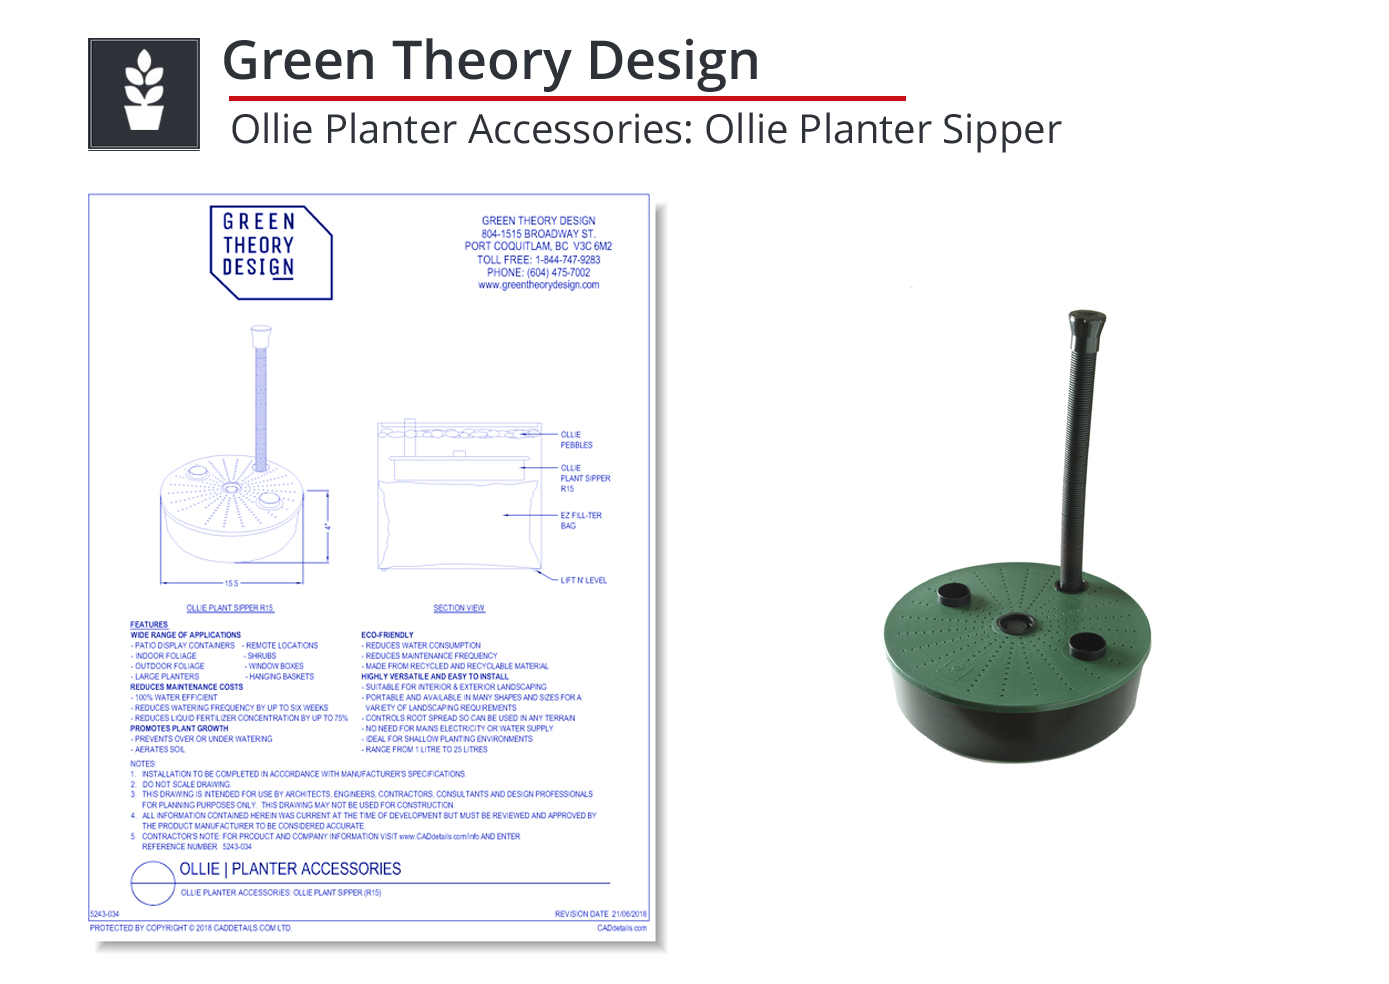 Green-Theory-Design-Ollie-Plant-Accessories-Ollie-Plant-Sipper-CAD-Drawing-2.jpg